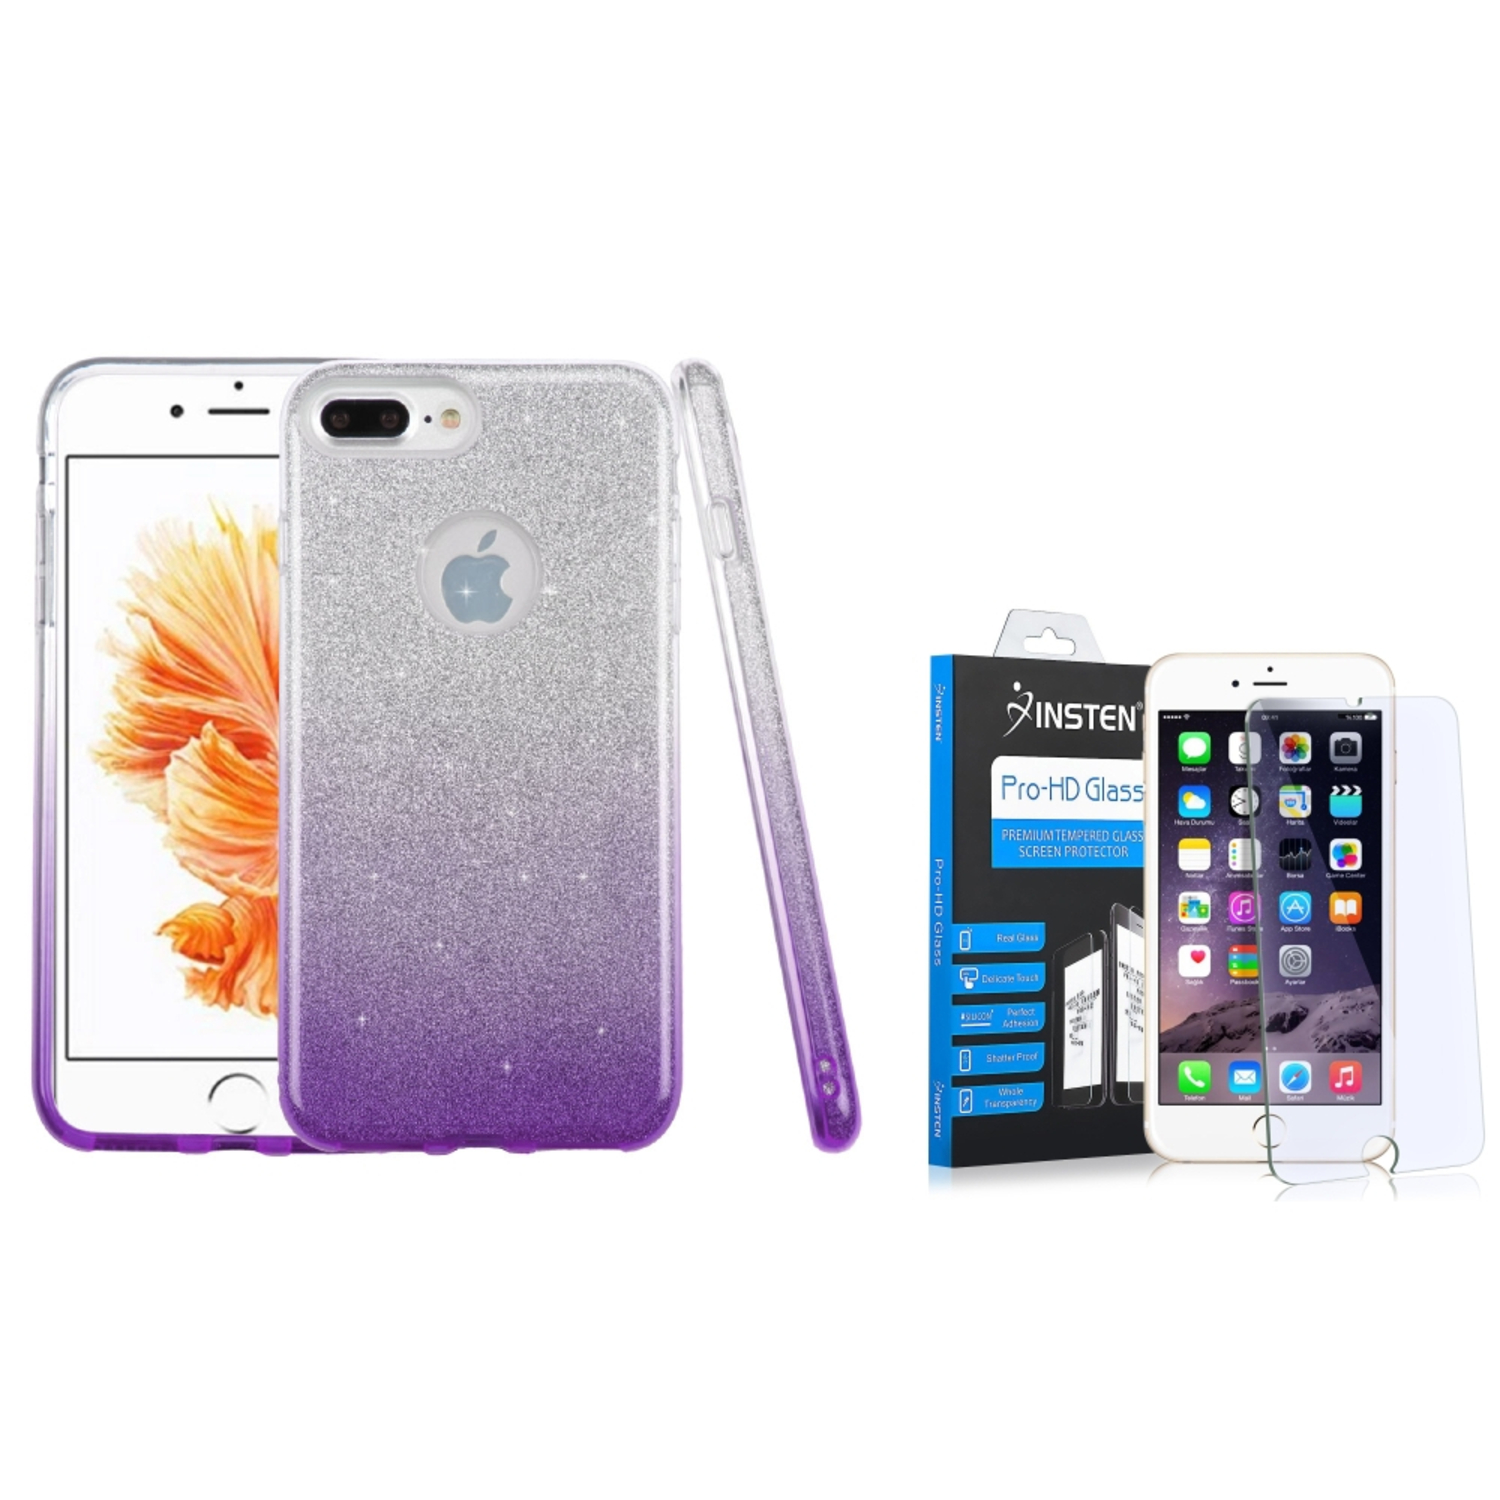 Insten Glitter Hybrid Hard Plastic / Soft Flexible Rubber Case For iPhone 7 Plus - Purple (+ Tempered Glass Protector)